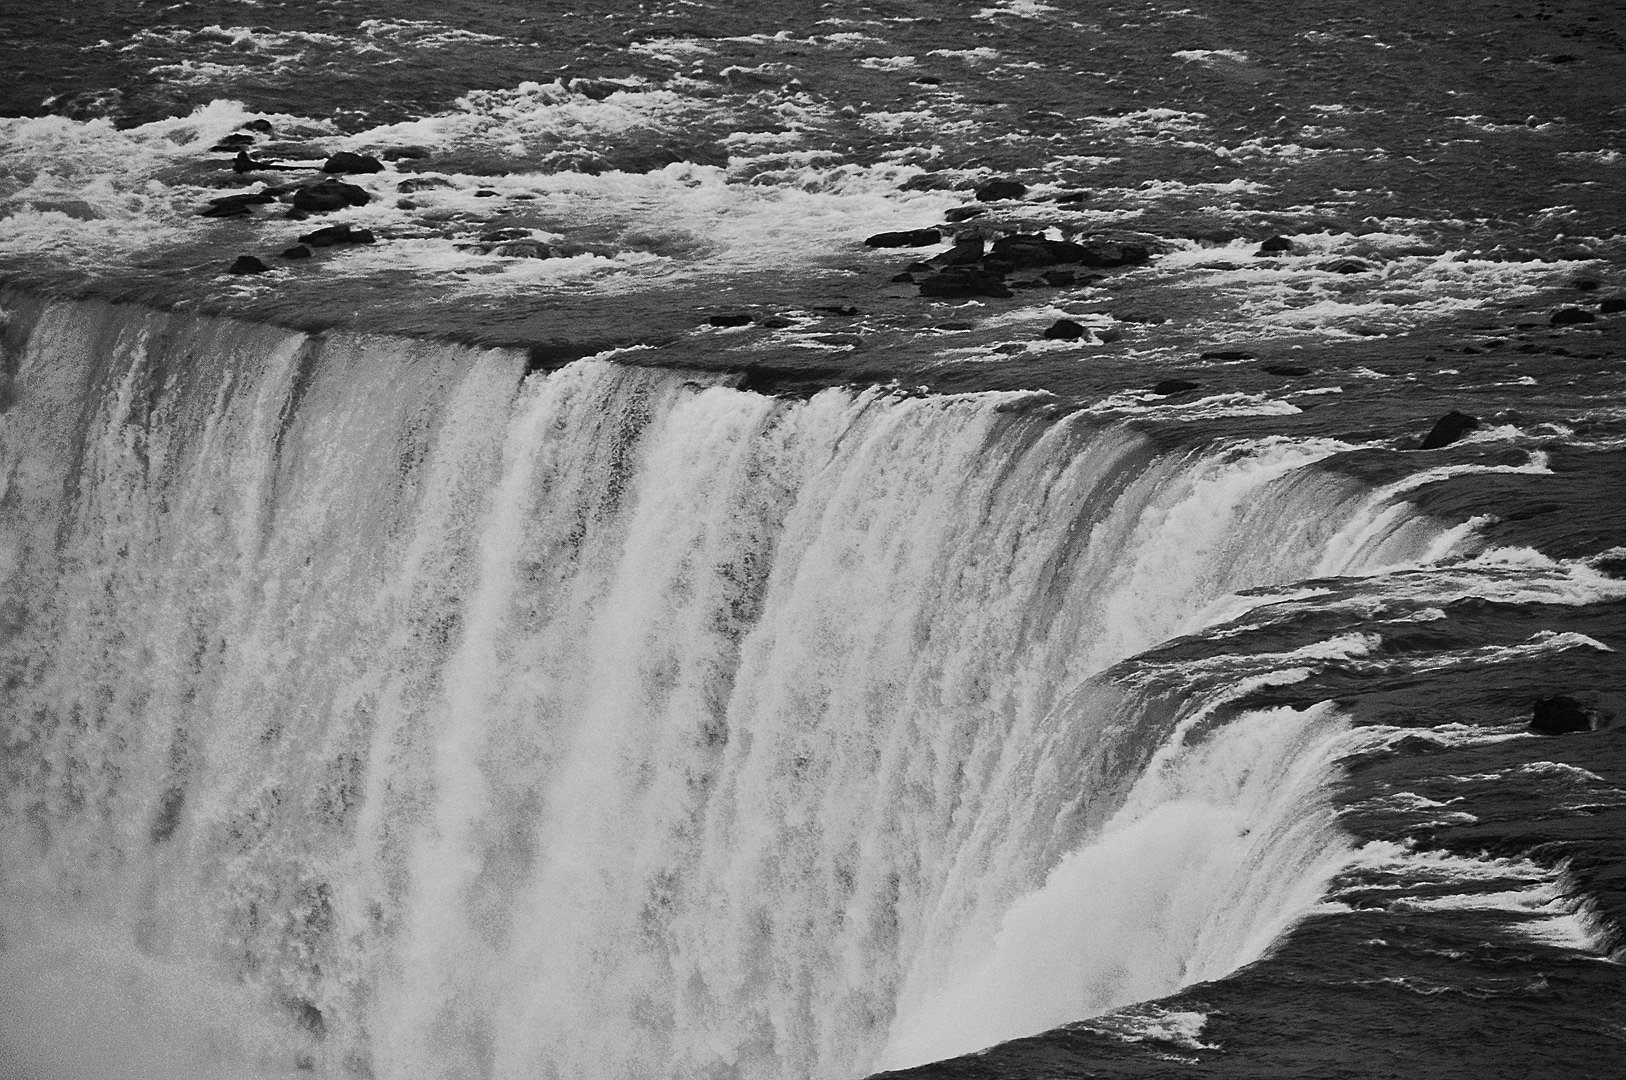 Niagara Falls The Power of Water in Black and White